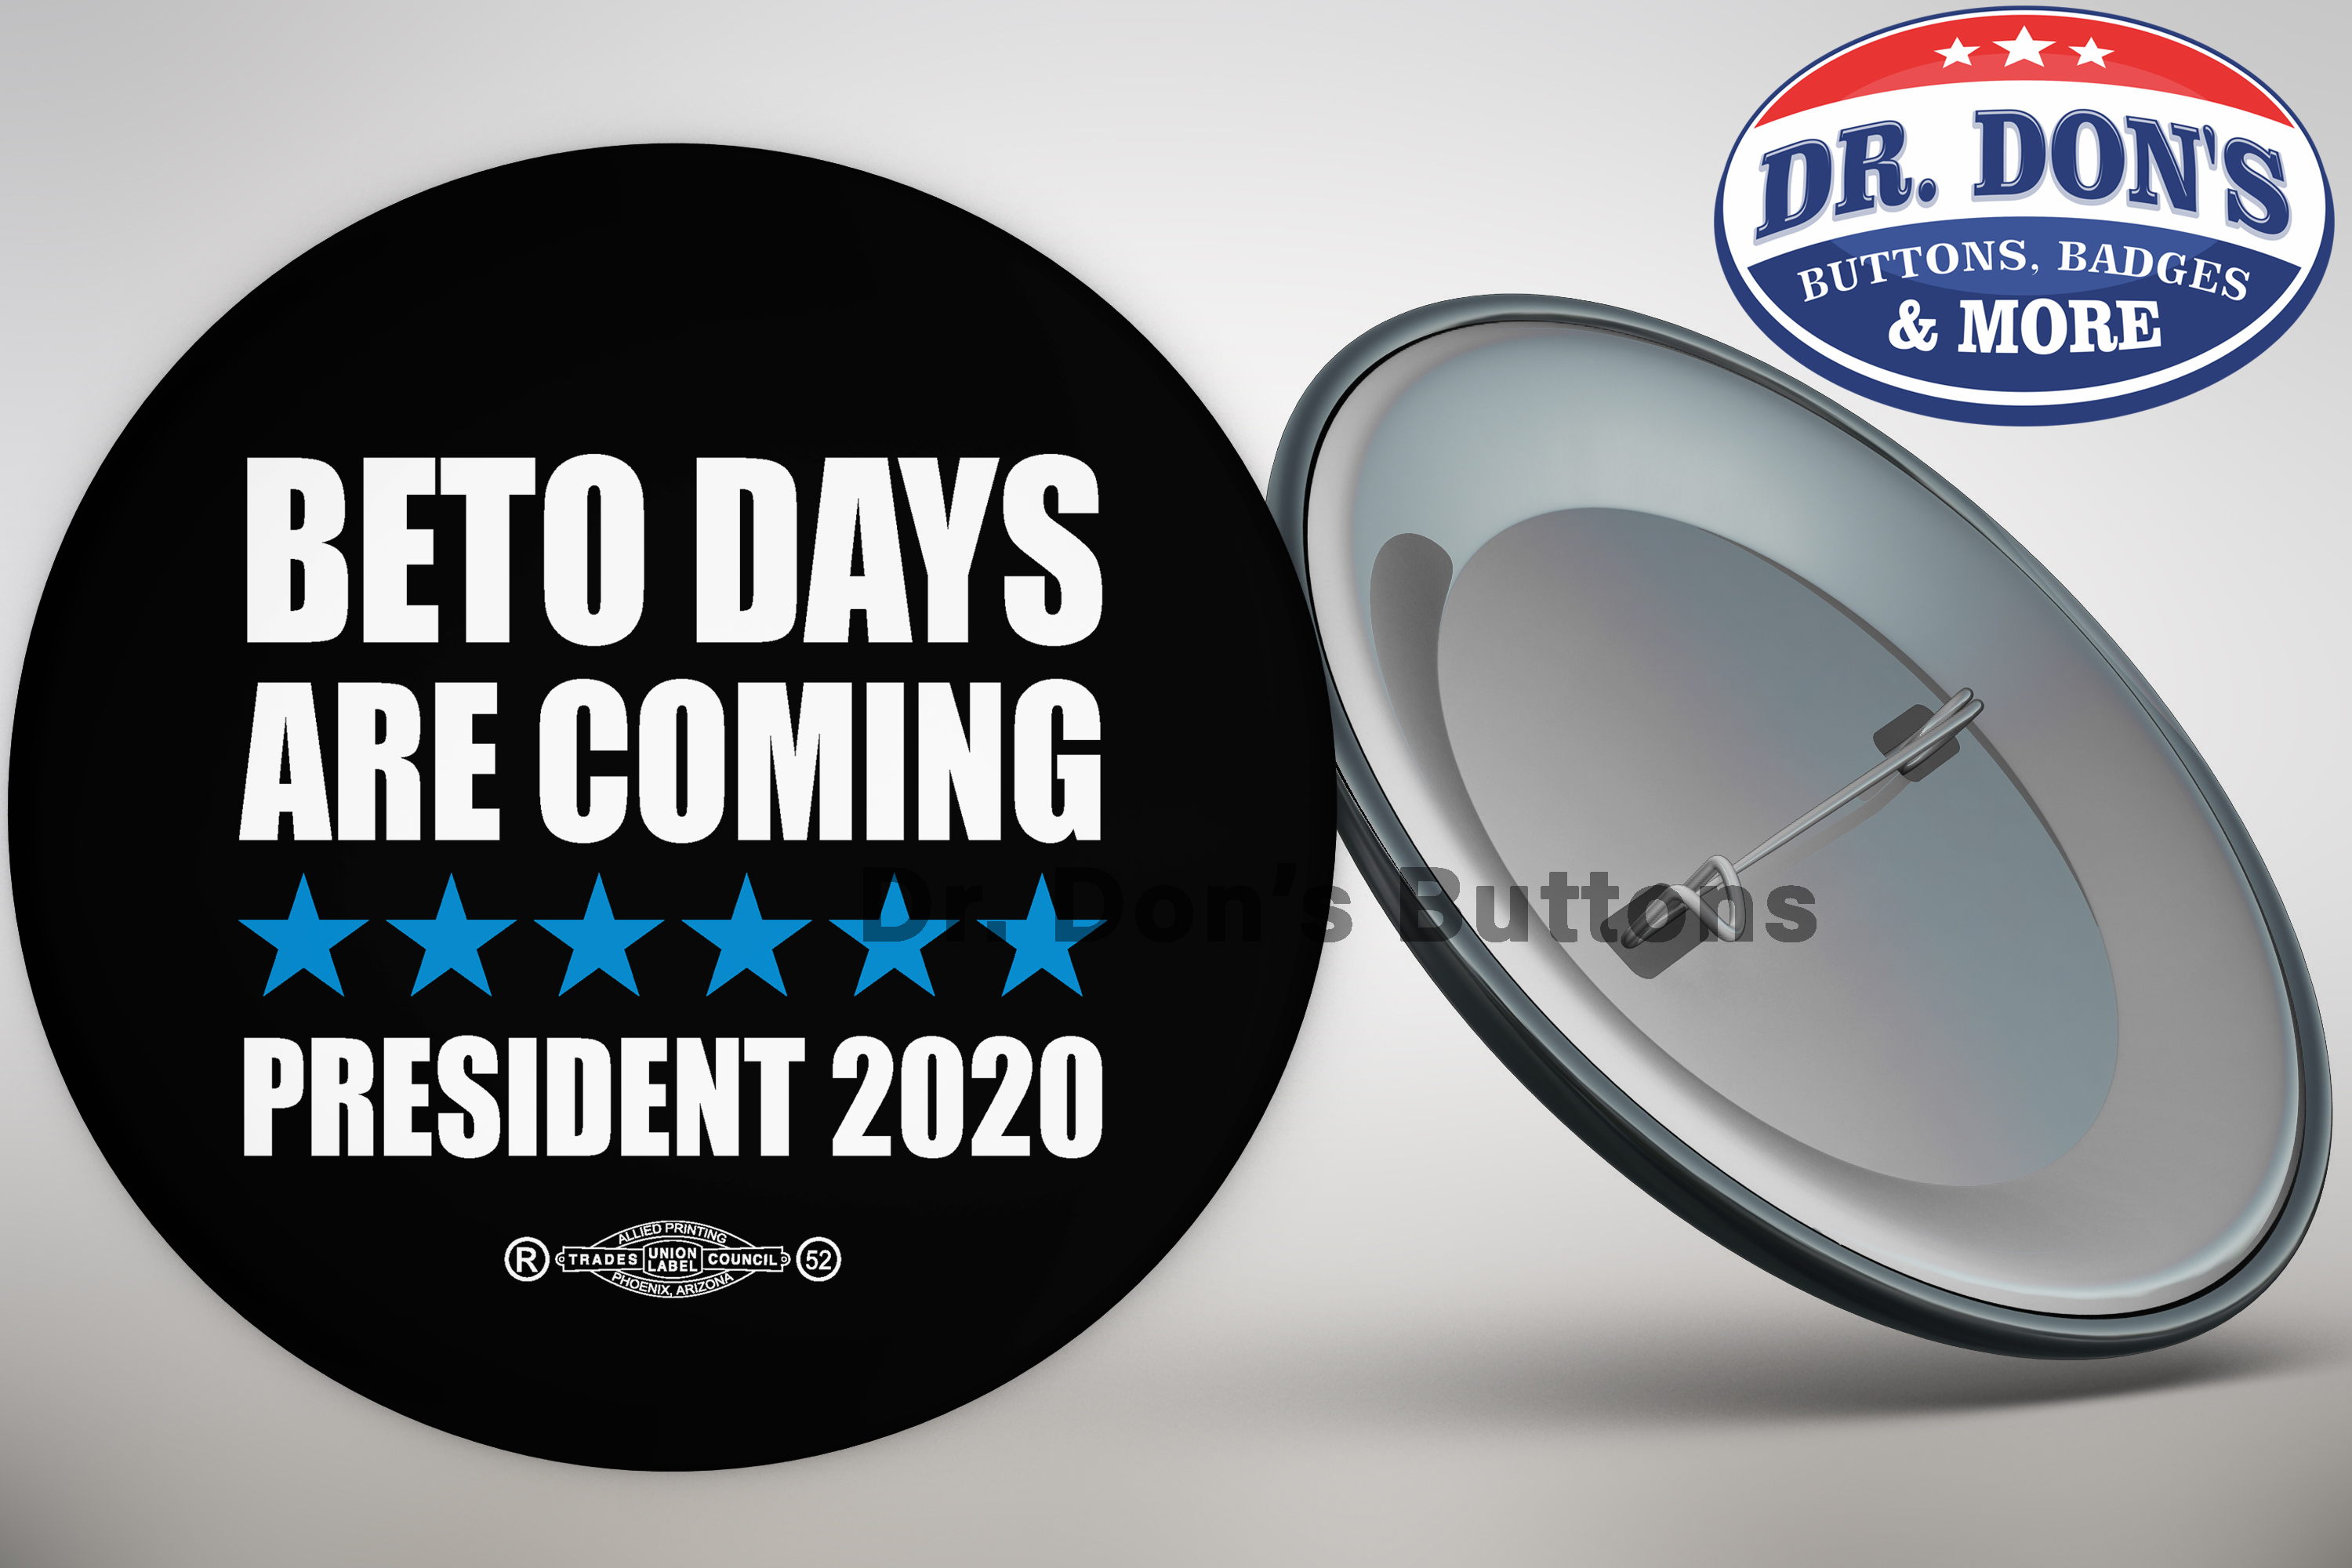 Beto Days Are Coming  President 2020 Beto Buttons 5 Pack with free sticker